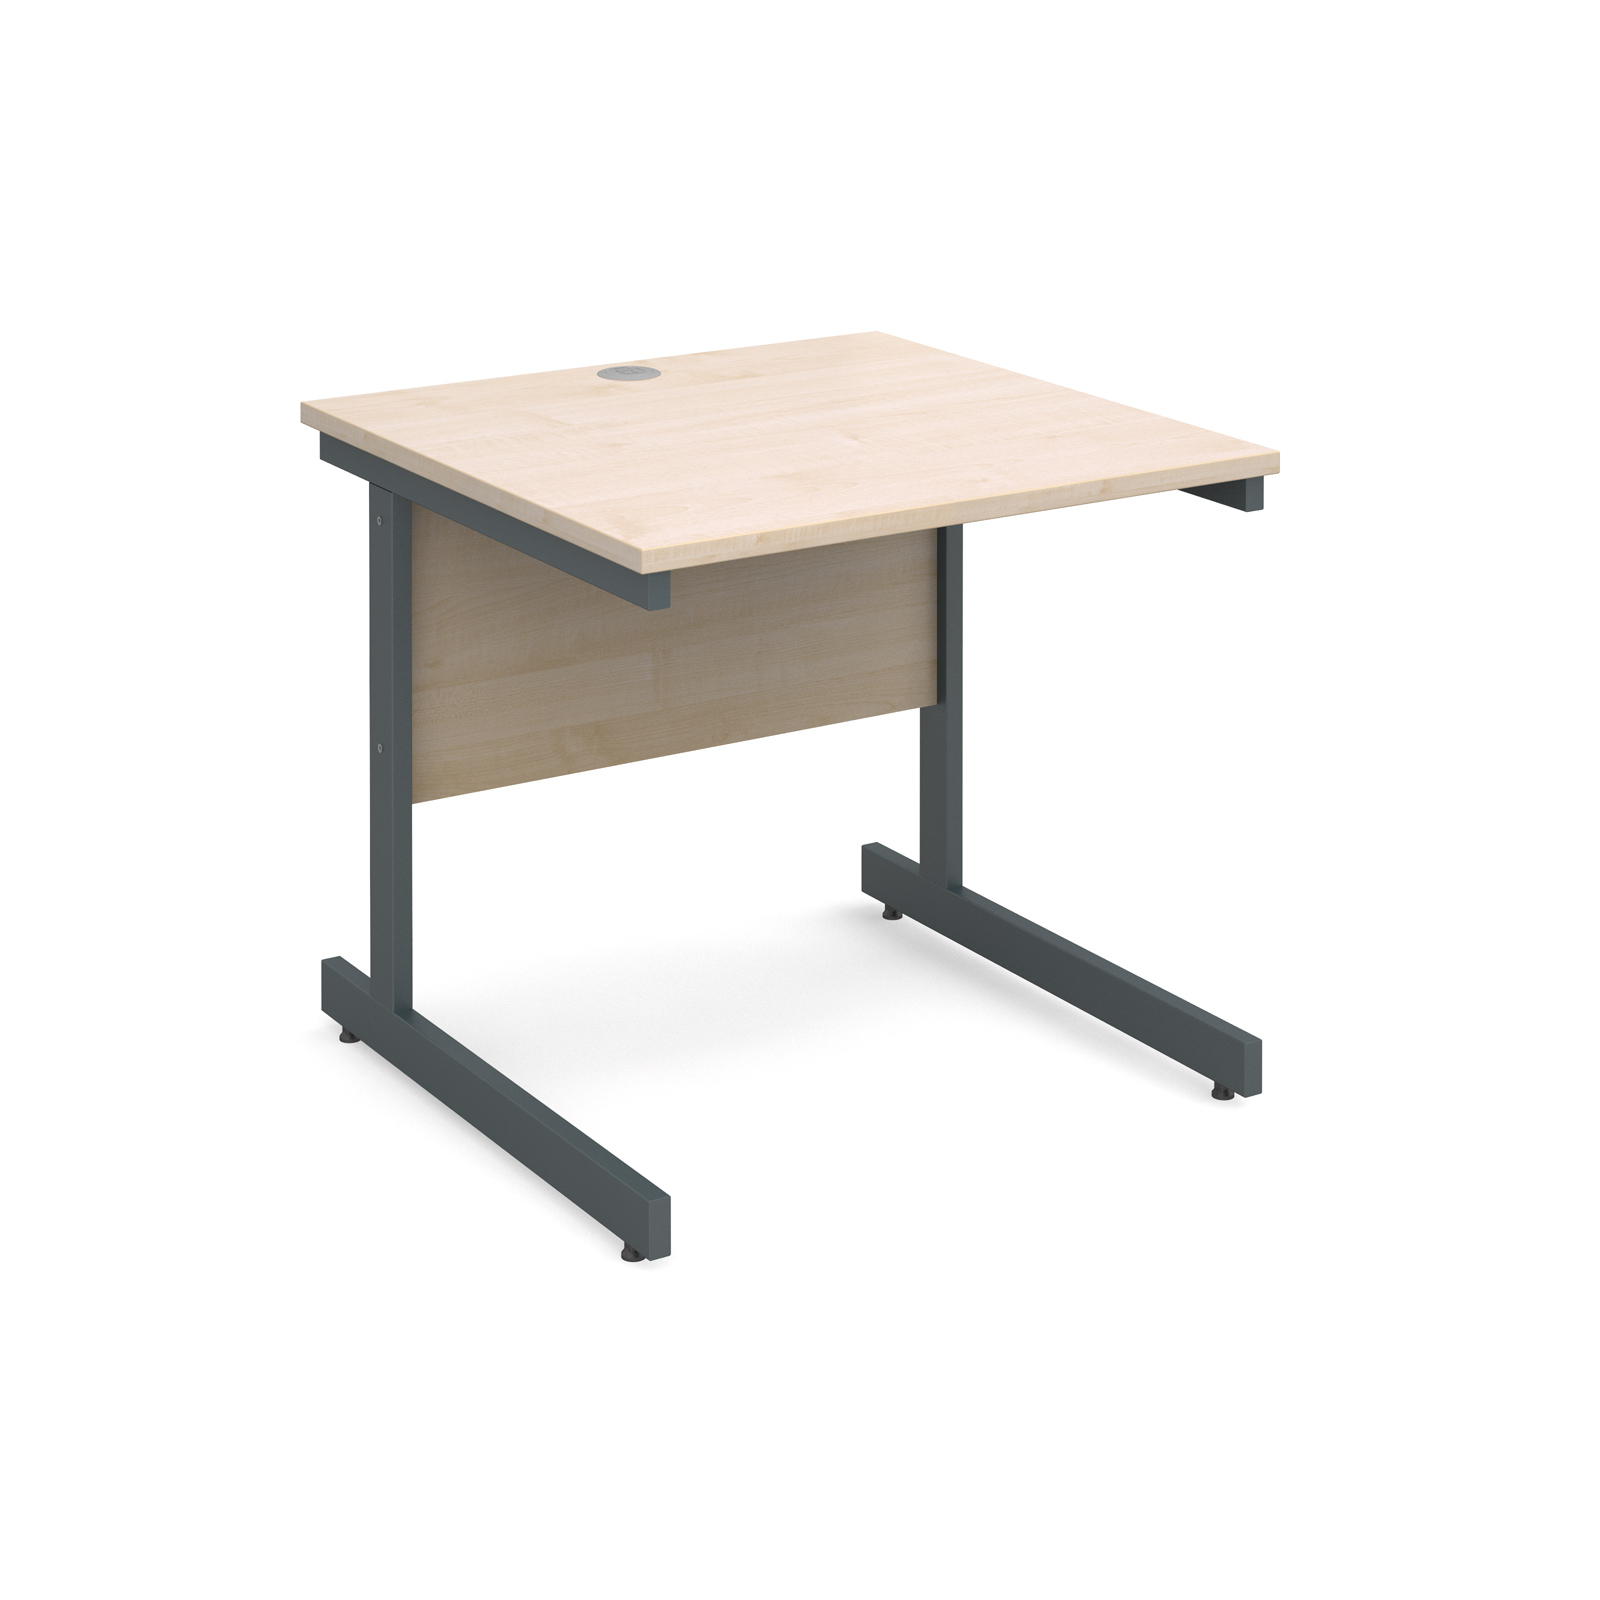 Dams Contract I Maple Desk | Straight